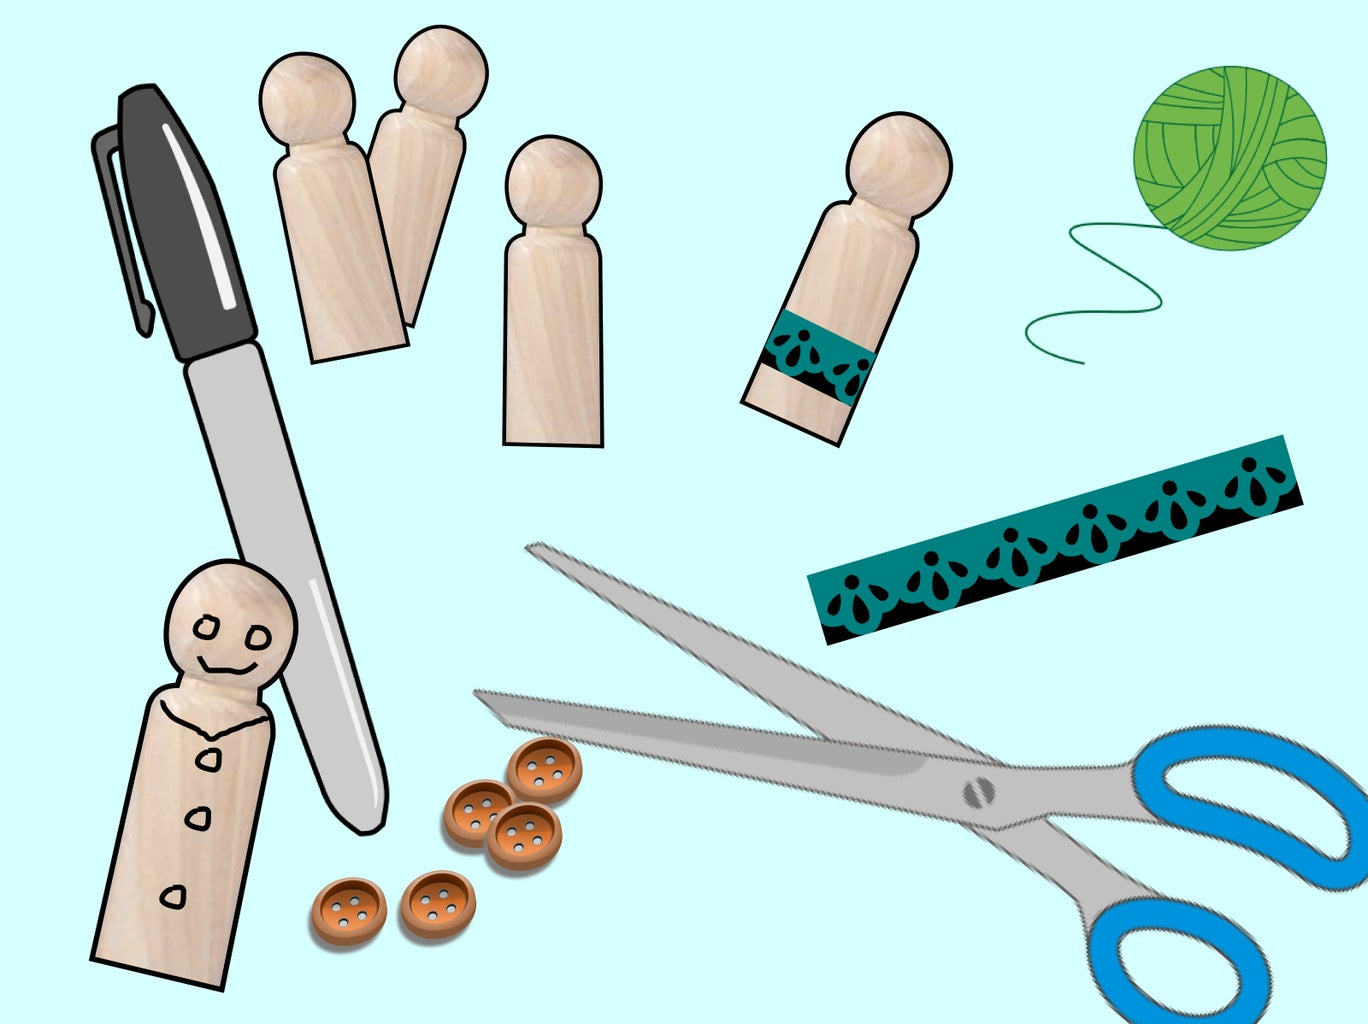 (Optional) Purchase Wooden Pegs and Decorate Them.